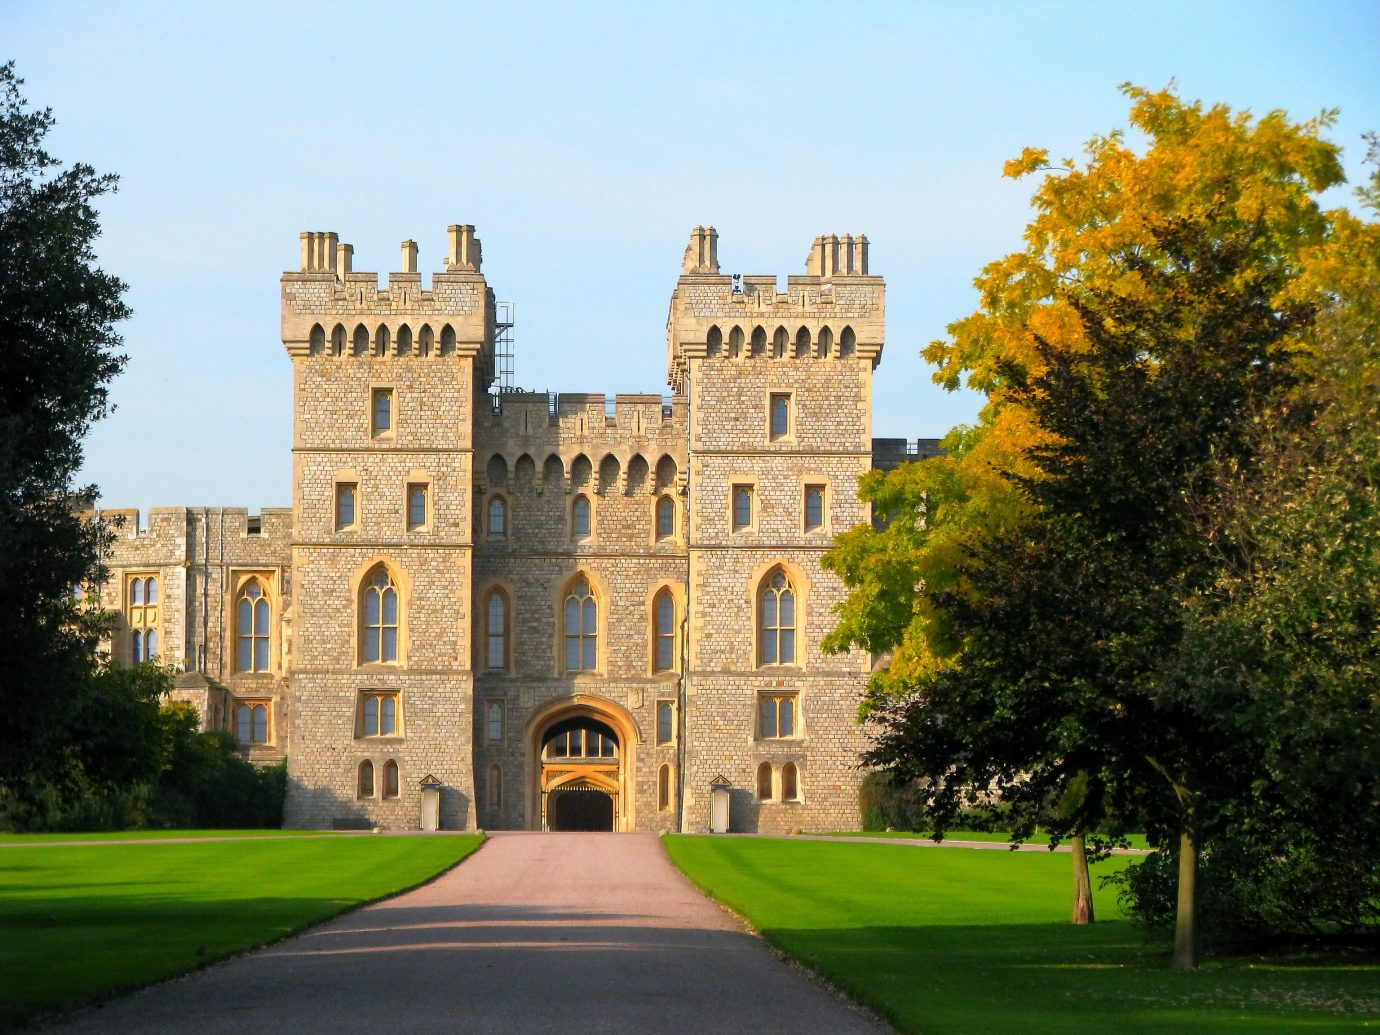 Road Trips Trip Ideas tree sky outdoor building stately home landmark estate castle green château medieval architecture national trust for places of historic interest or natural beauty mansion historic site grass palace manor house university facade arch old lawn plant campus